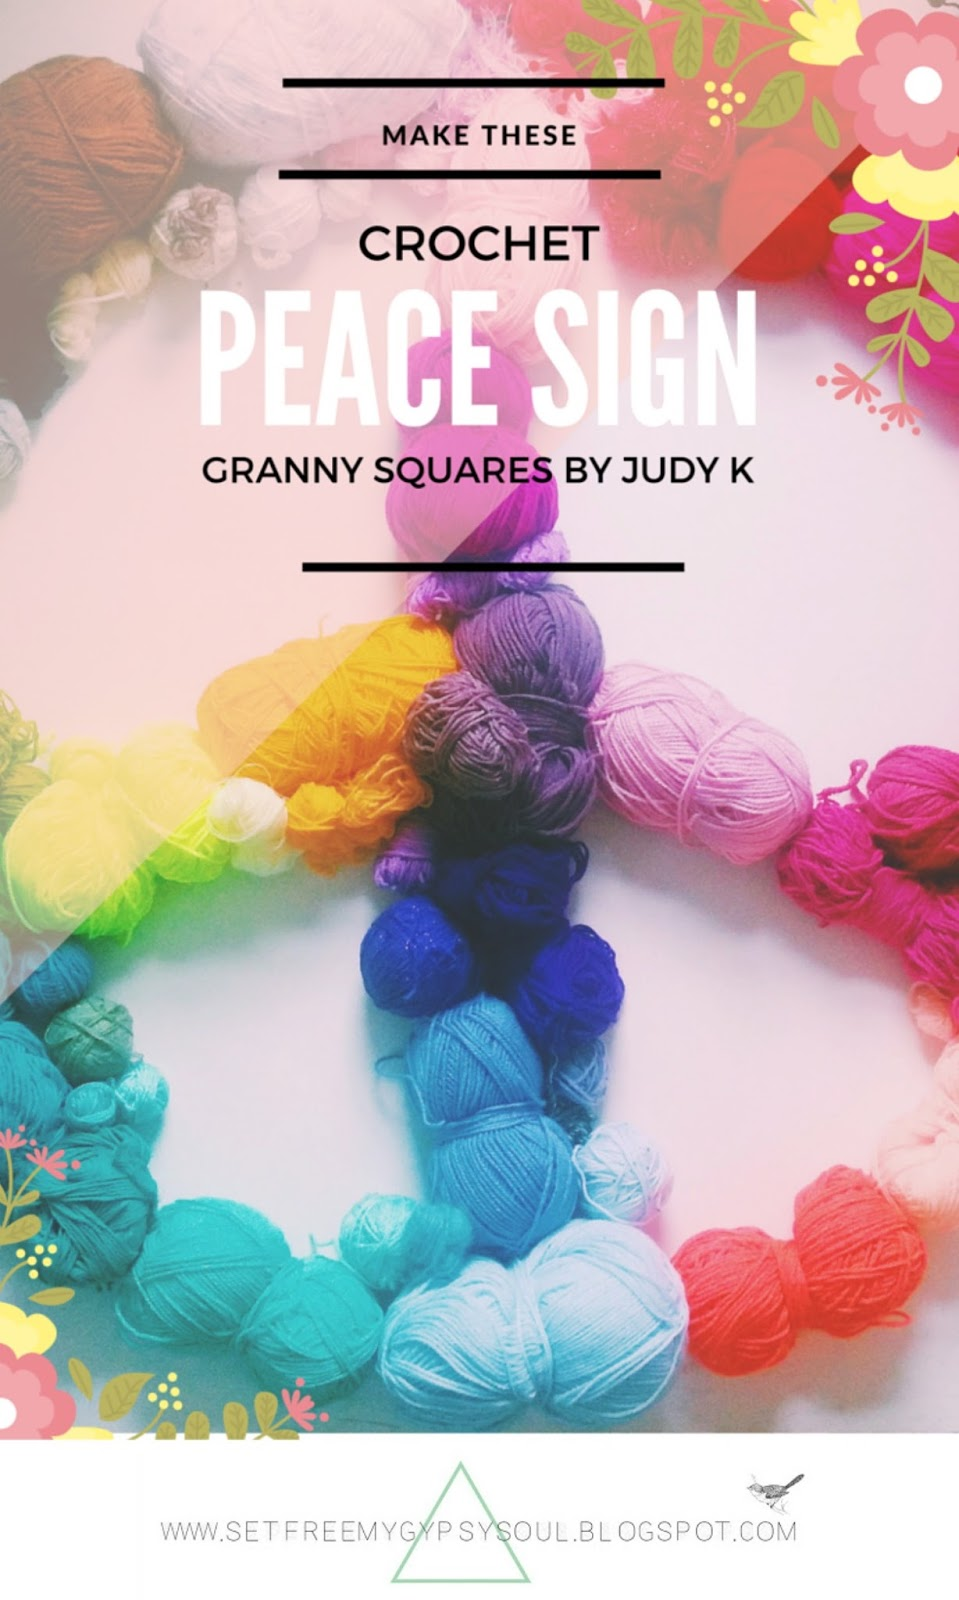 peace sign crochet granny square judy k pattern